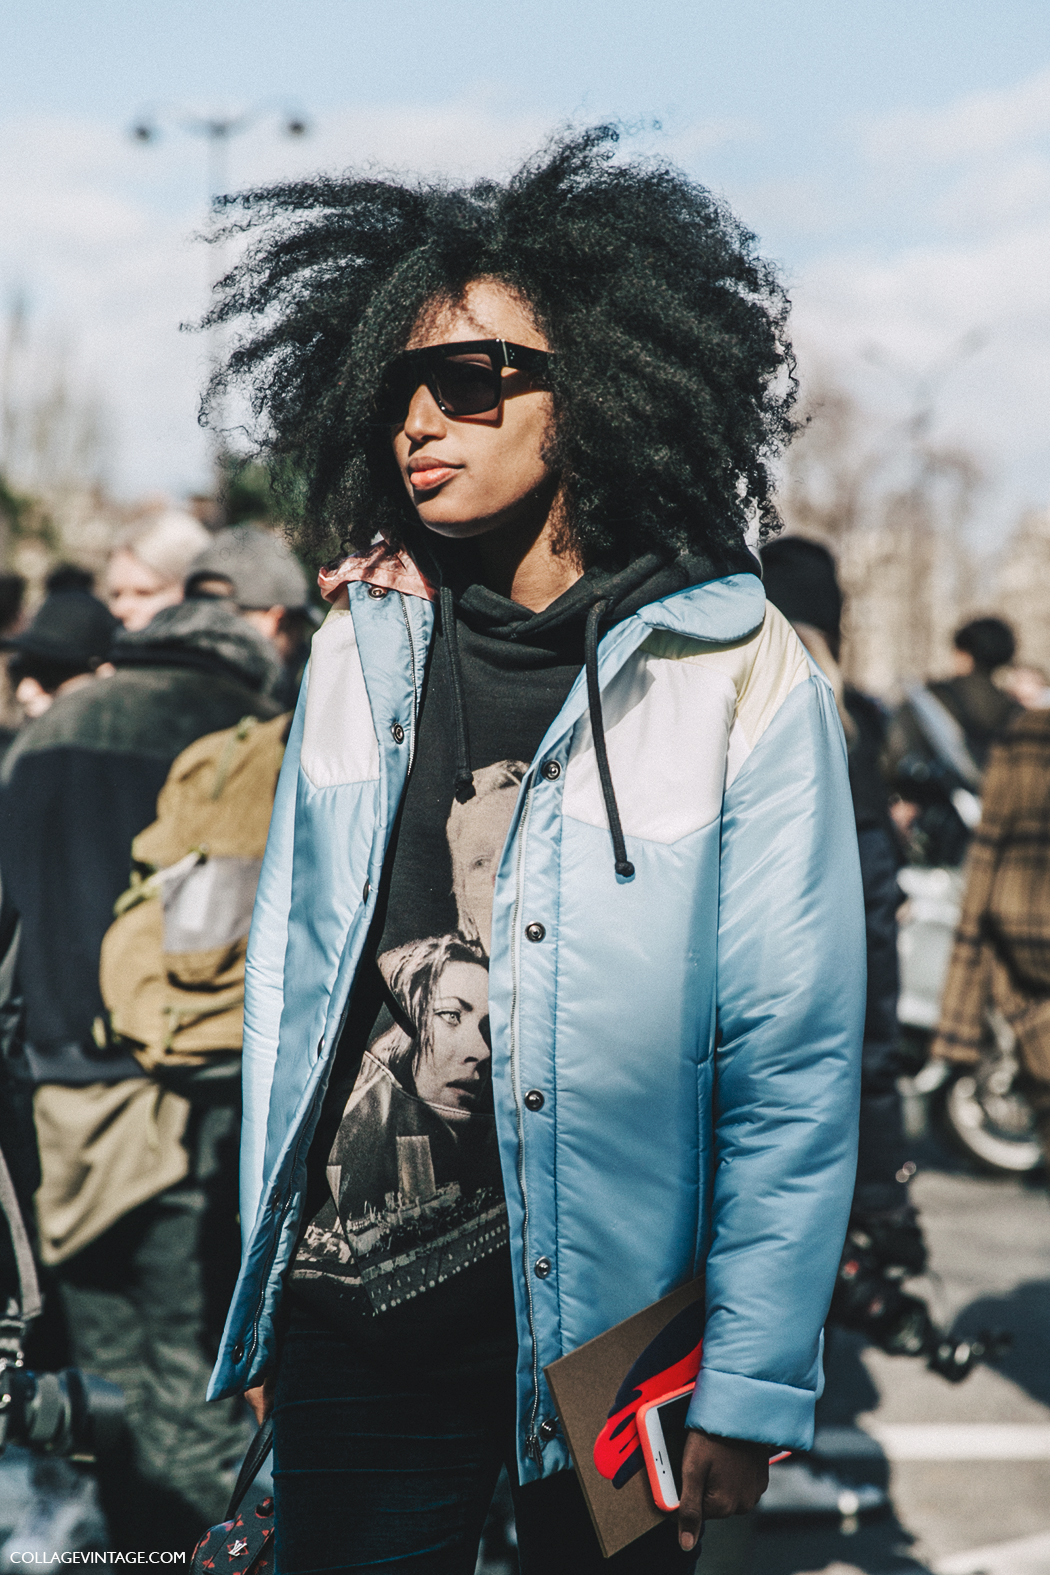 PFW-Paris_Fashion_Week_Fall_2016-Street_Style-Collage_Vintage-Julia_Sarr_Jamois-1